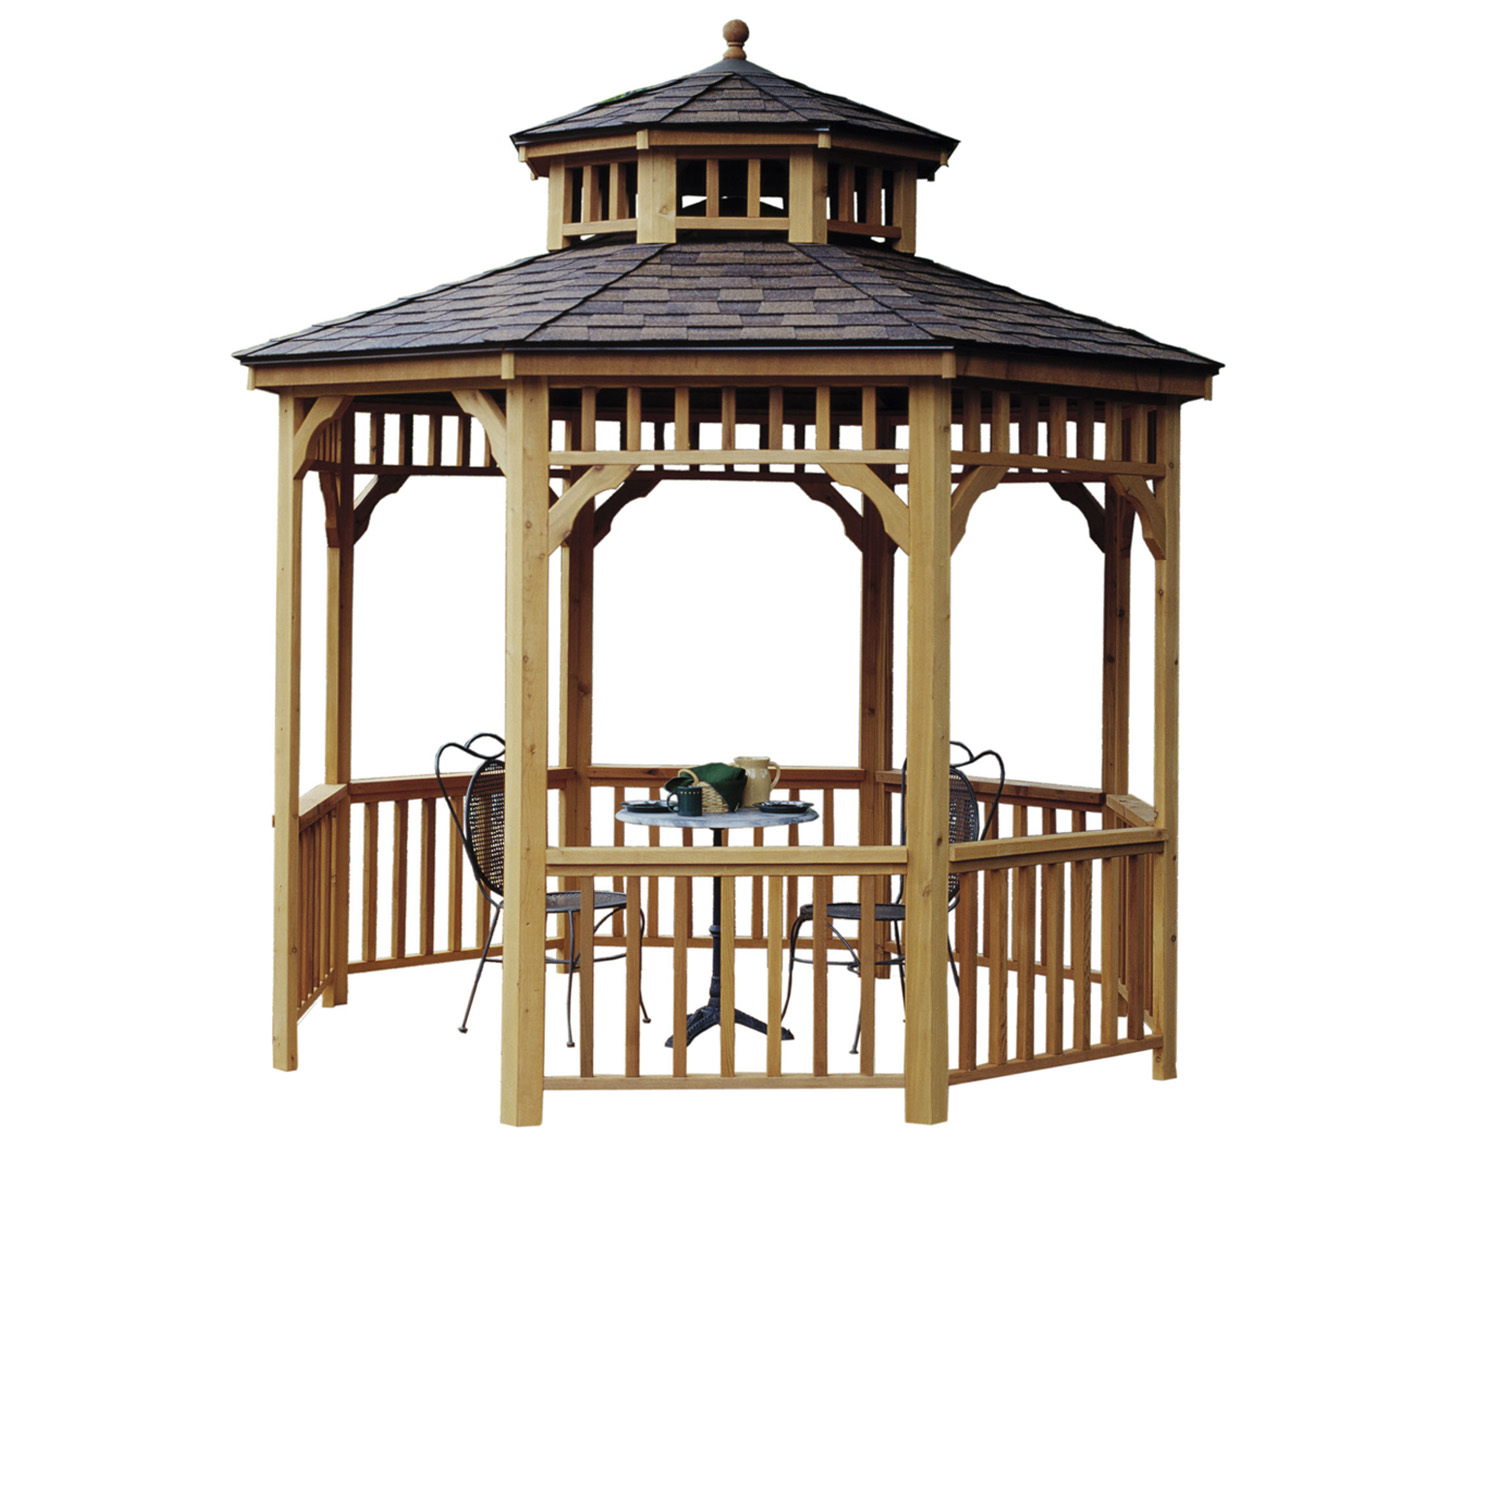 The Biology Lab Mary Dunnes as well 3143 Arching Garden Arbor additionally Wine Barrel Bar Table And Many Other Diy Furniture That Can Be Transferred Into An Old Barrel Itself besides 16 Diy Playhouses Your Kids Will Love To Play In further Barn Door Construction. on swing to shed